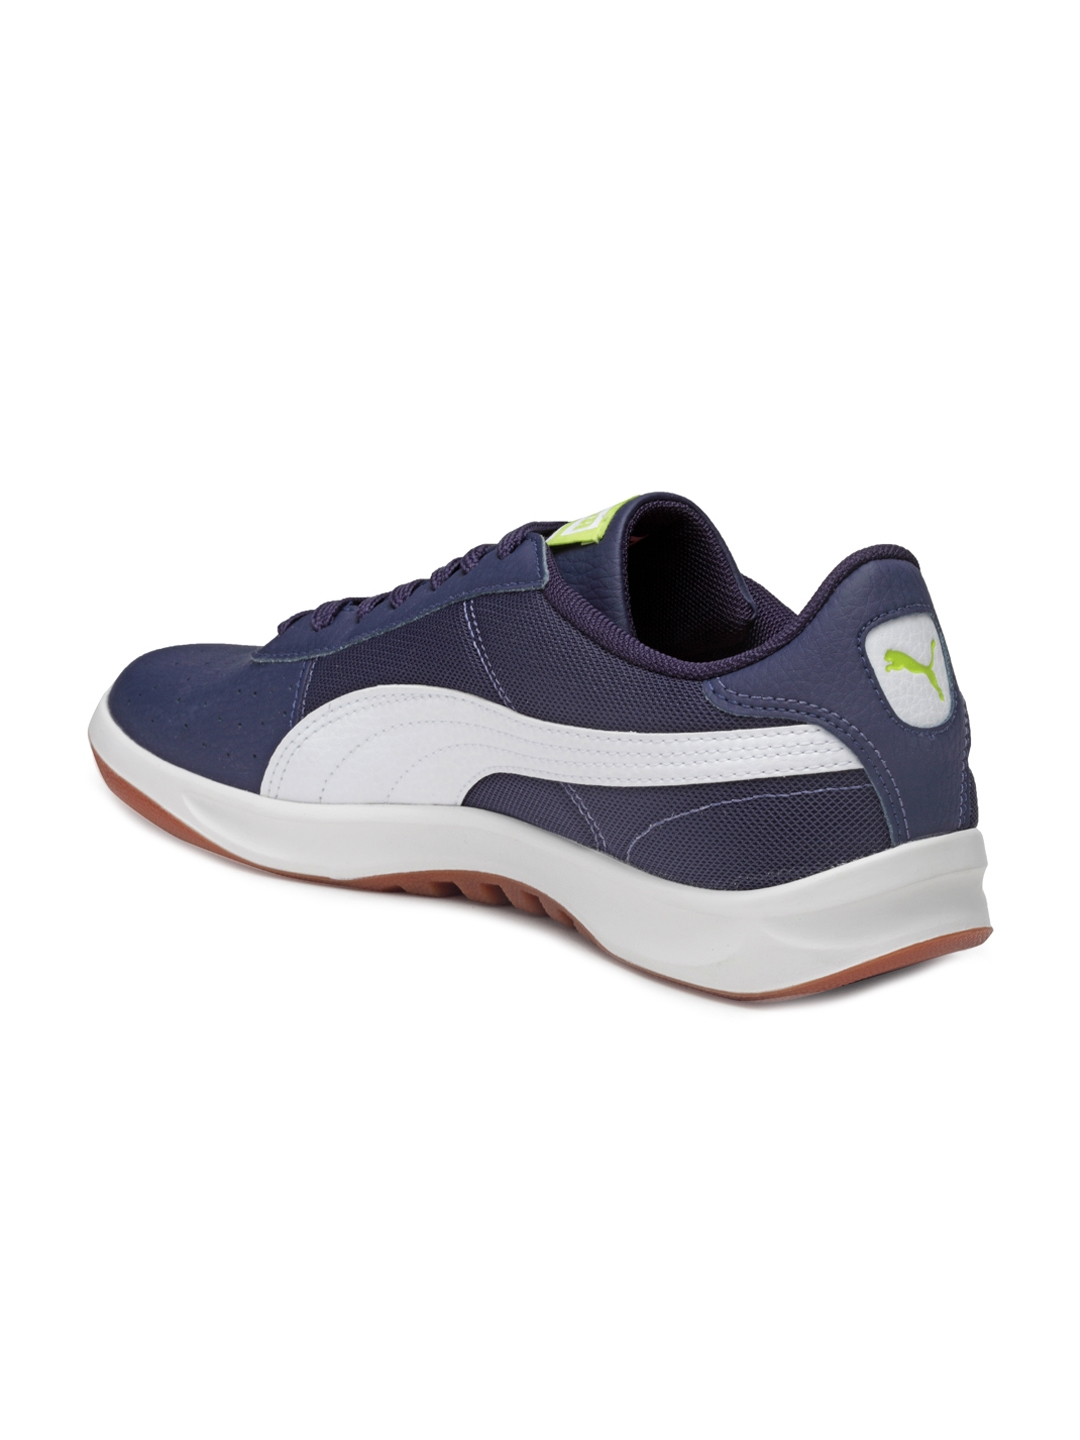 dbc7ebfe65ca Buy Puma Men Navy Blue G. Vilas 2 Core IDP Peacoat Puma White ...